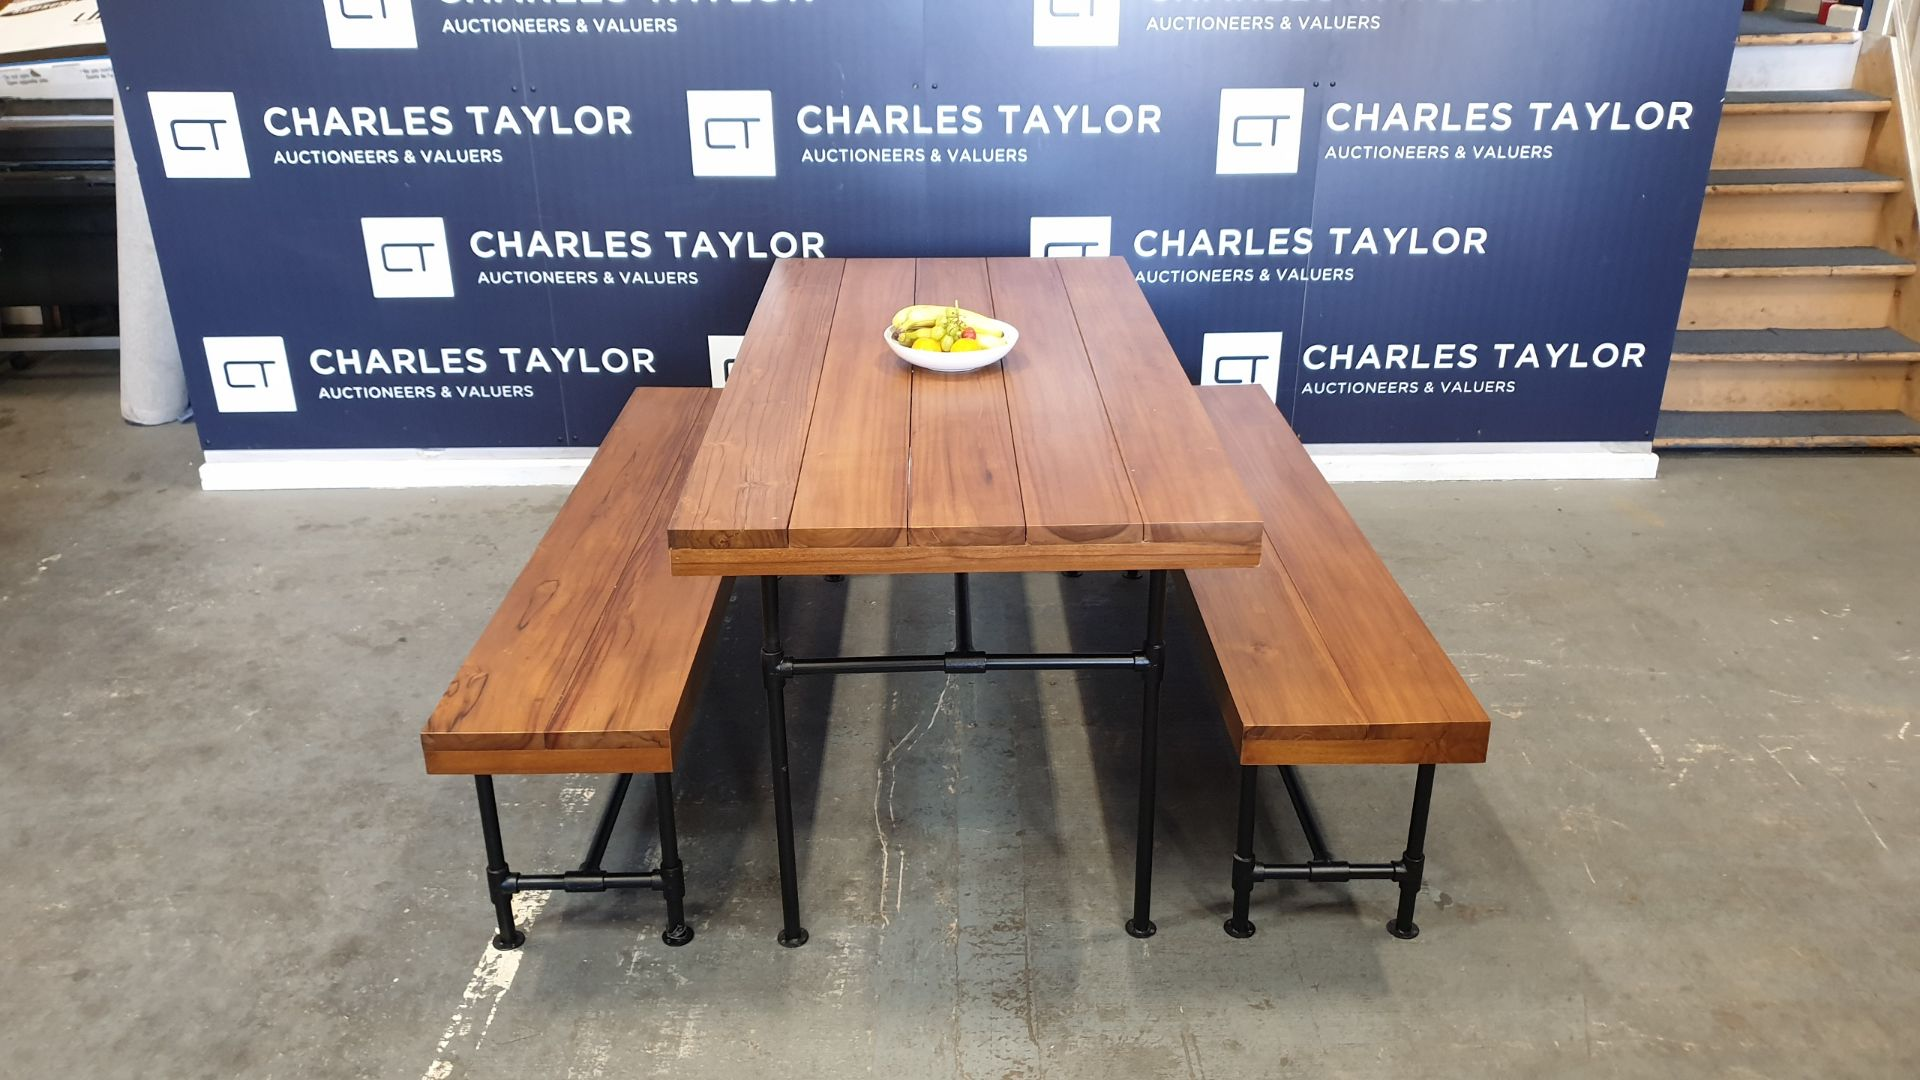 Lot 23 - BRAND NEW SOLID TEAK WOODEN 3 PIECE PIPE TABLE 160 X 160 X 76cm RRP £1550